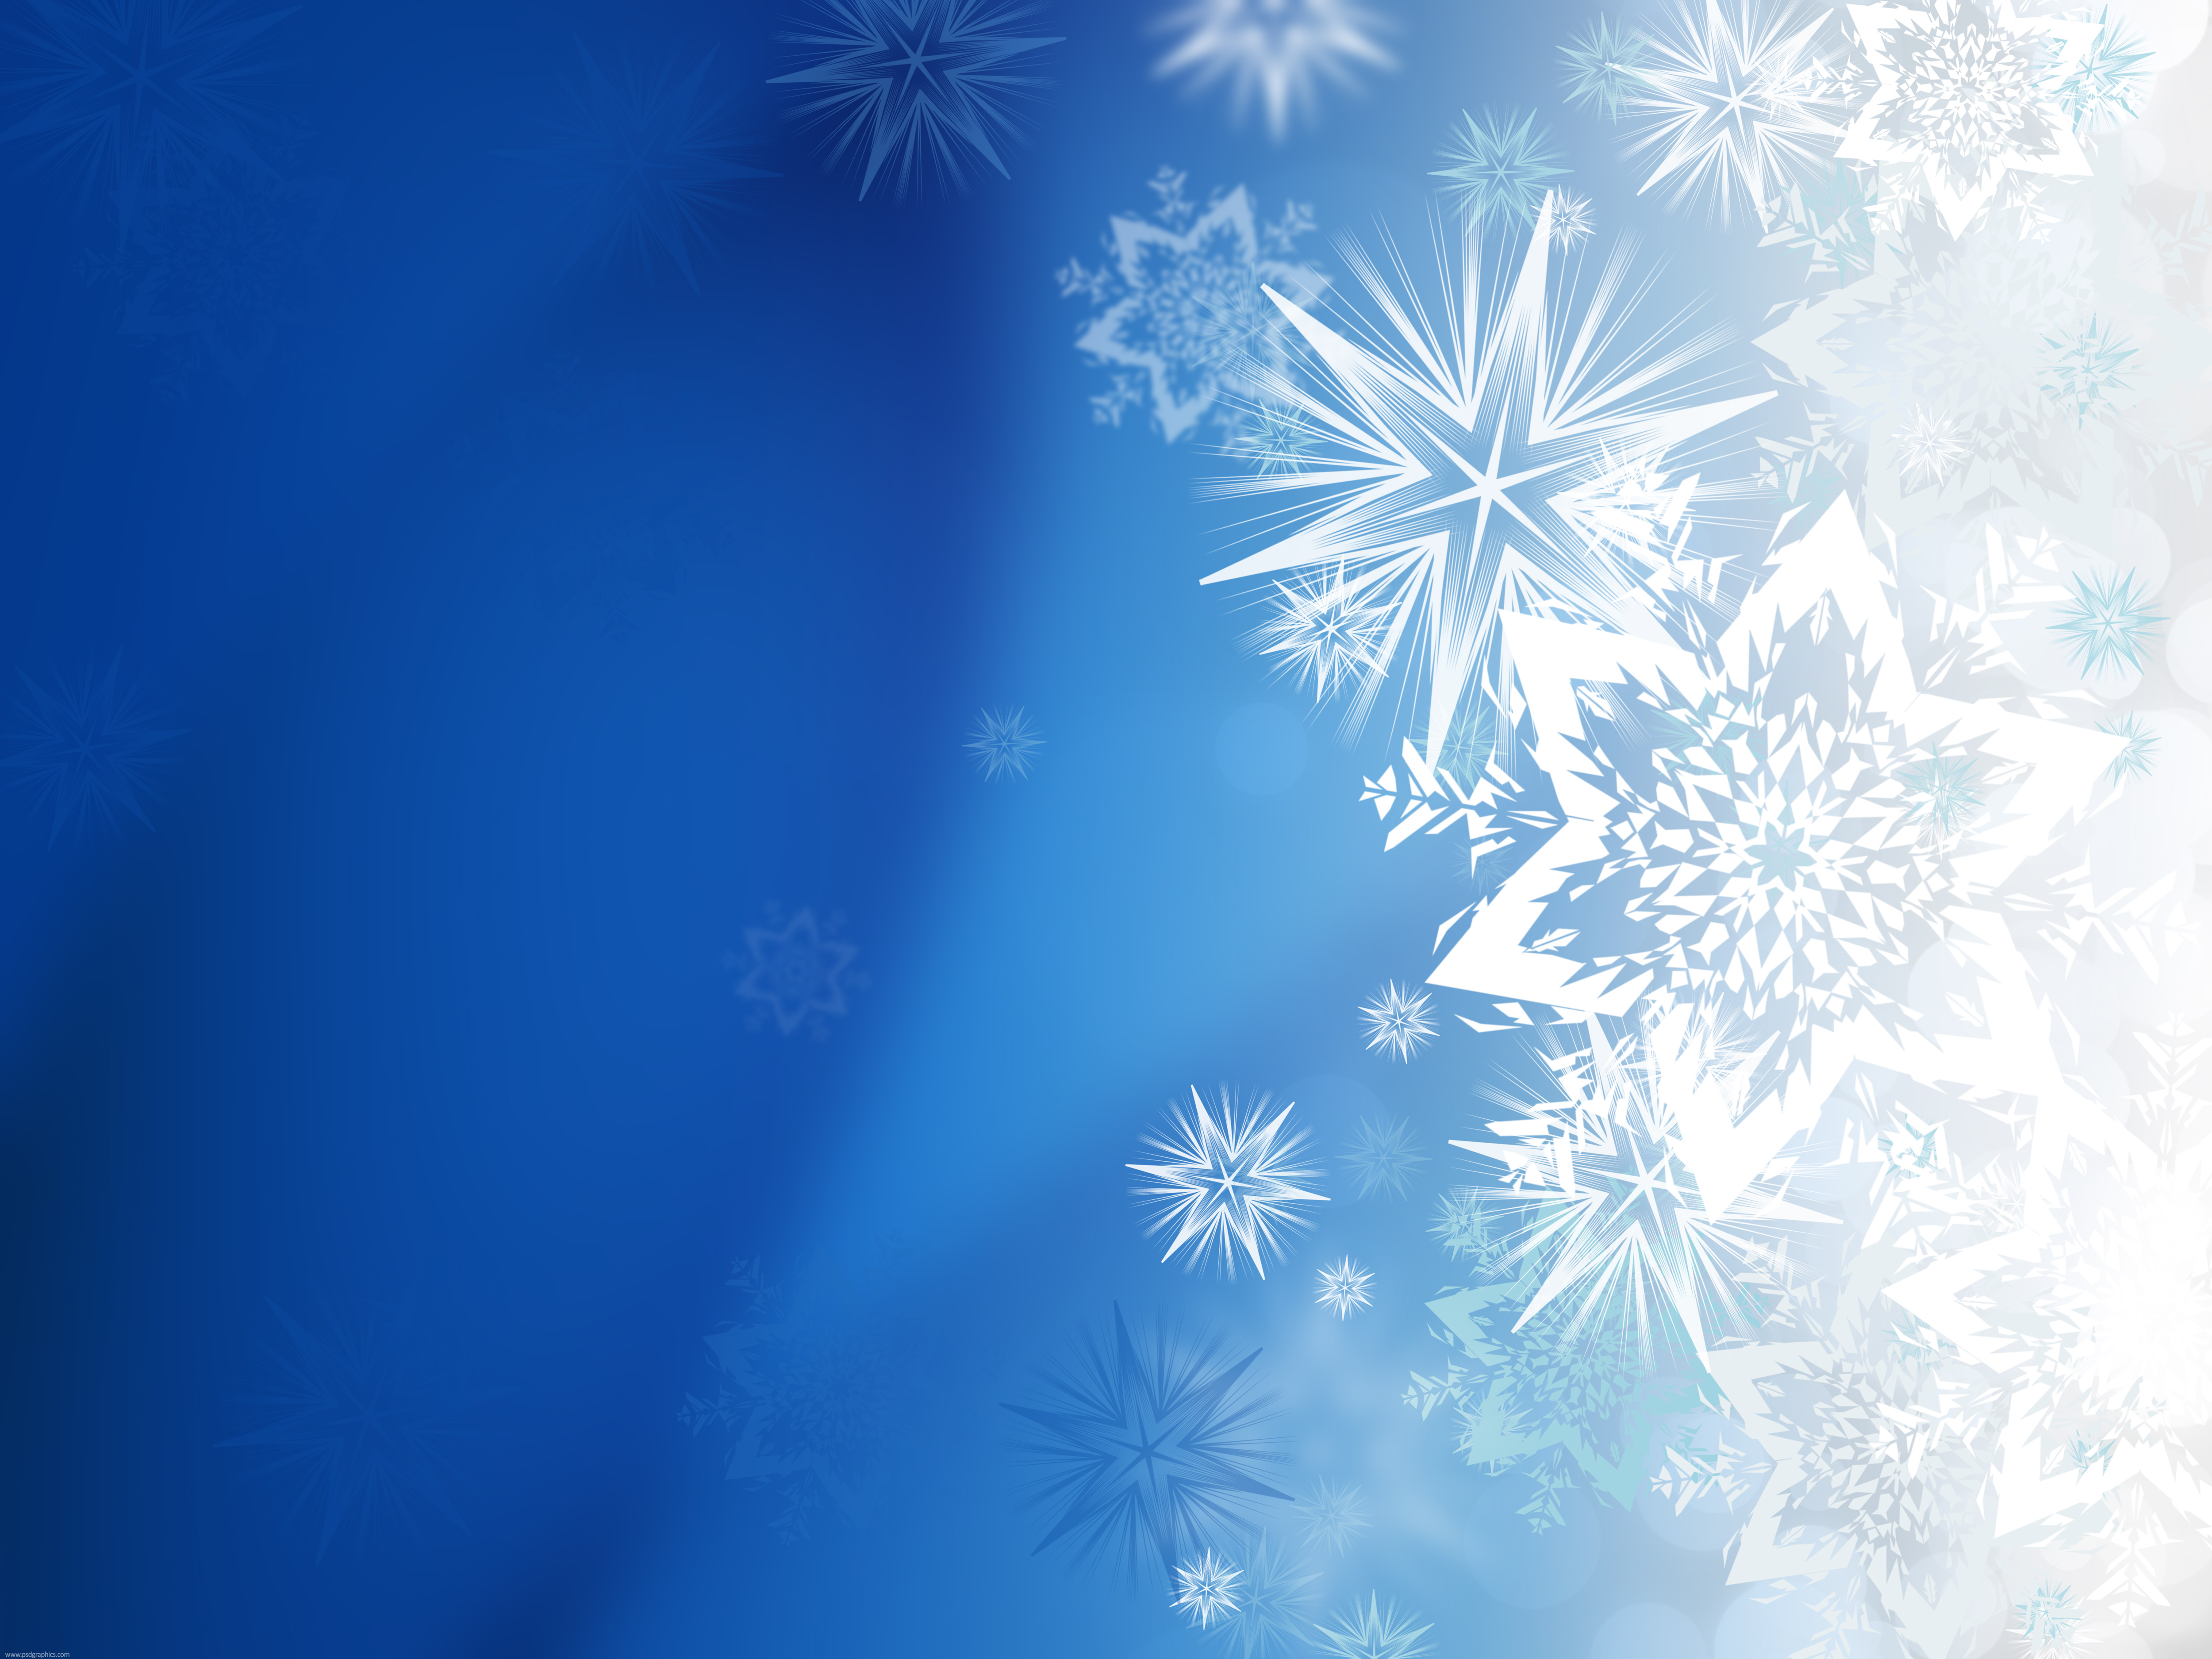 Magic Winter Snowflakes   Psdgraphics